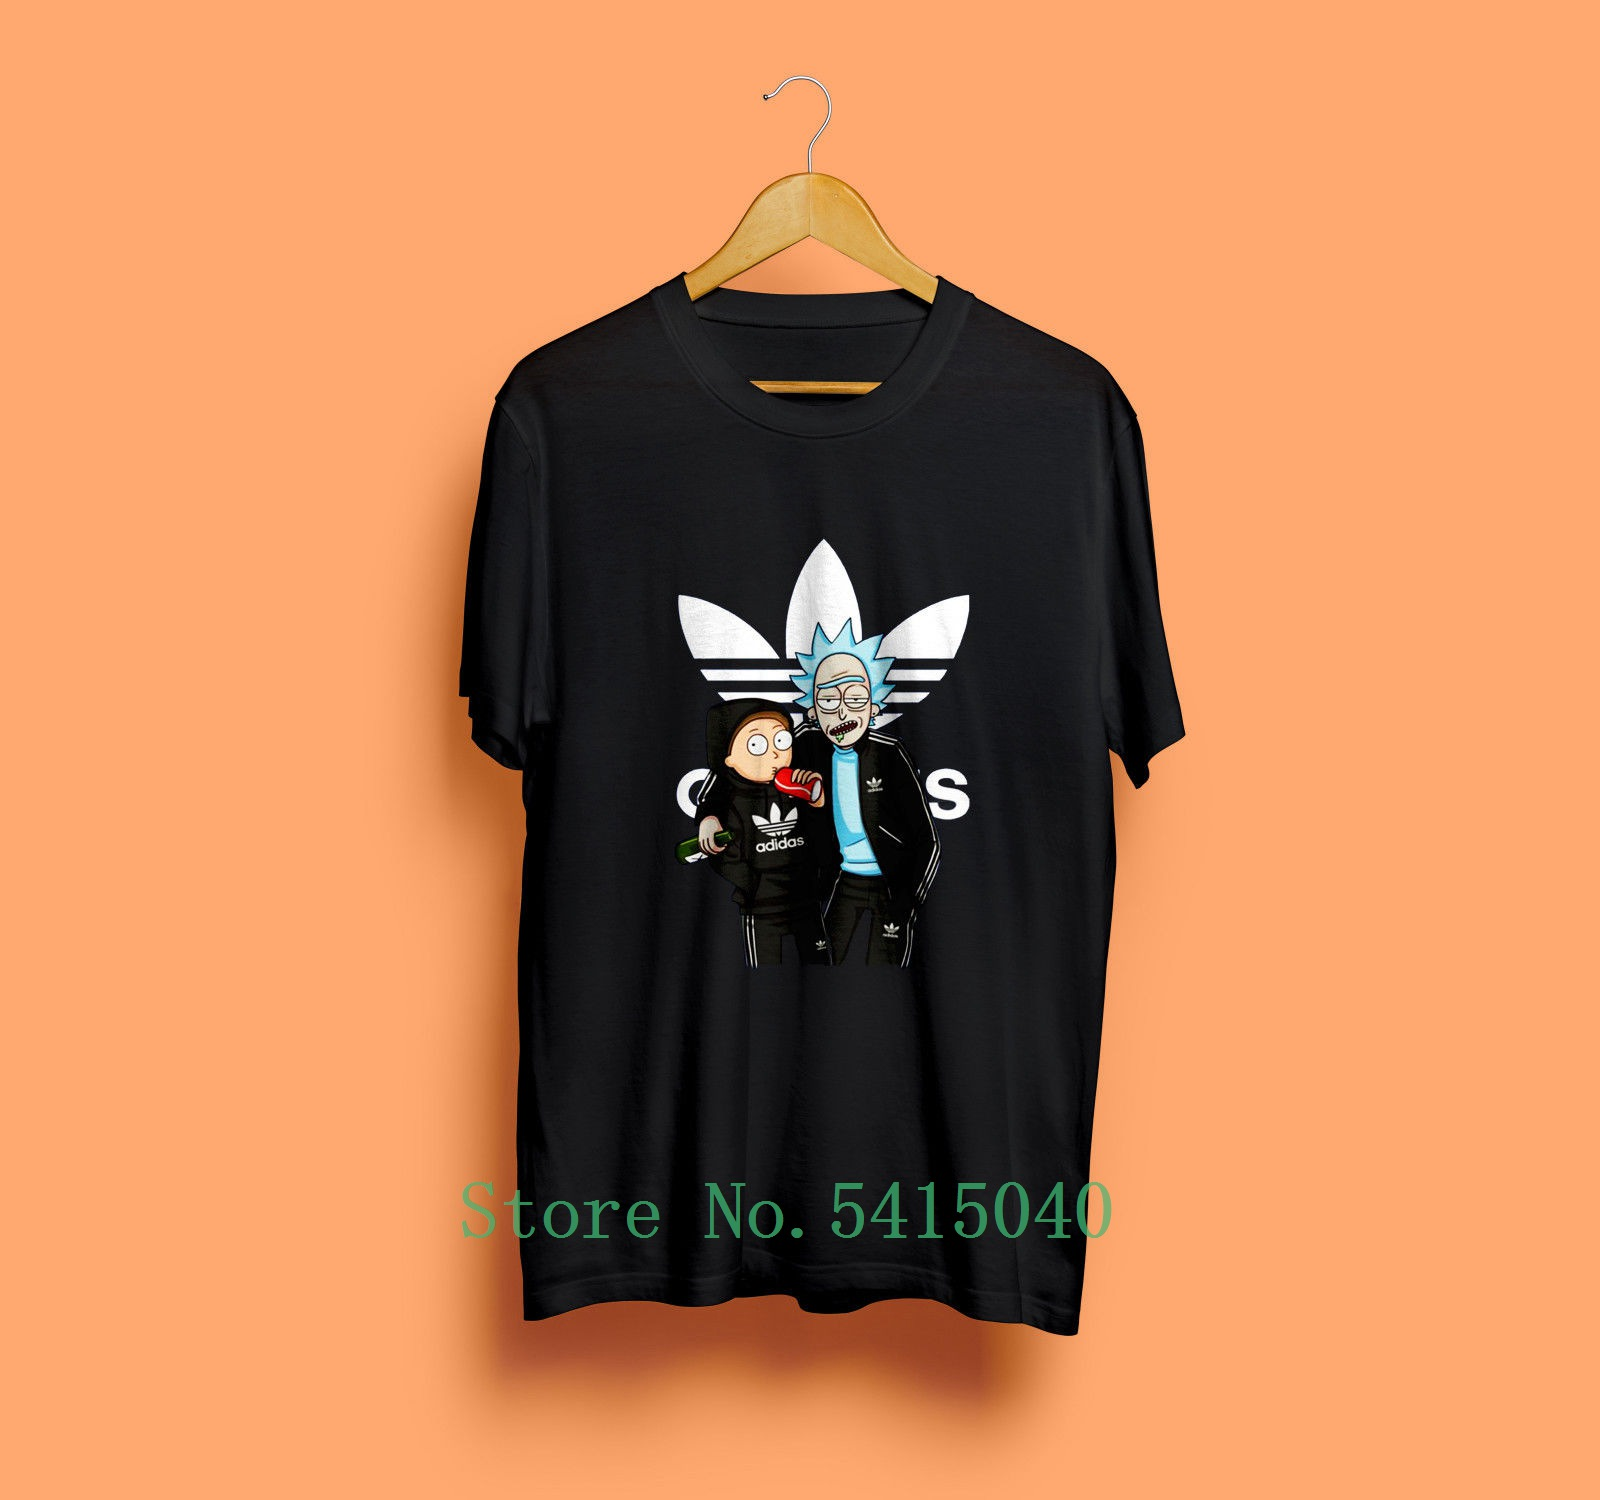 Rick And Morty Funny T-Shirt Anime Movie Sport Brand New Free Rick Pickle Anime Tops Tee Plus T-Shirts Style Casual Size S-5xl